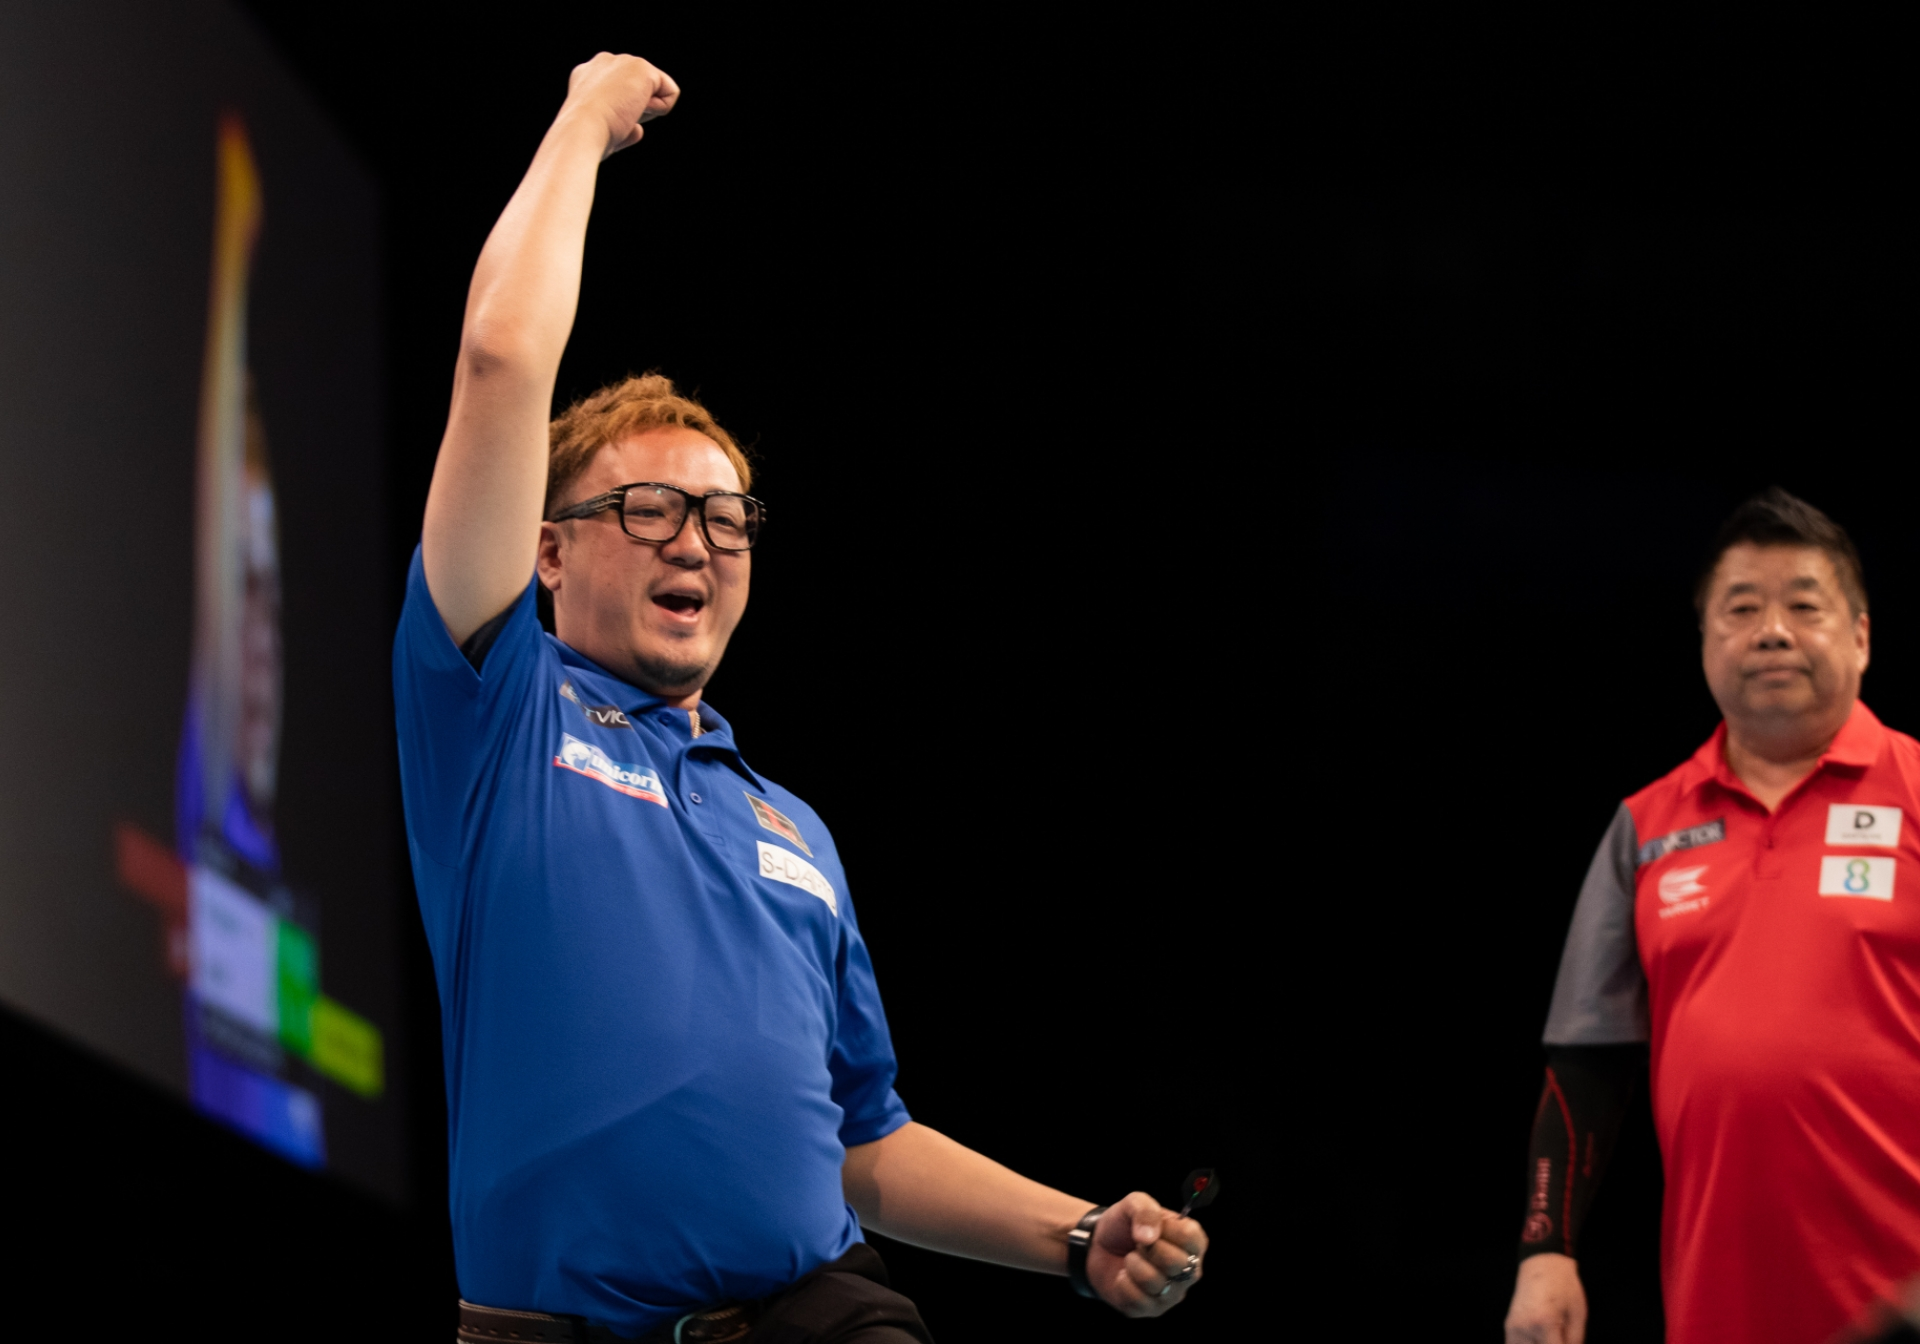 Japan's Seigo Asada - BetVictor World Cup of Darts (Stefan Strassenberg)